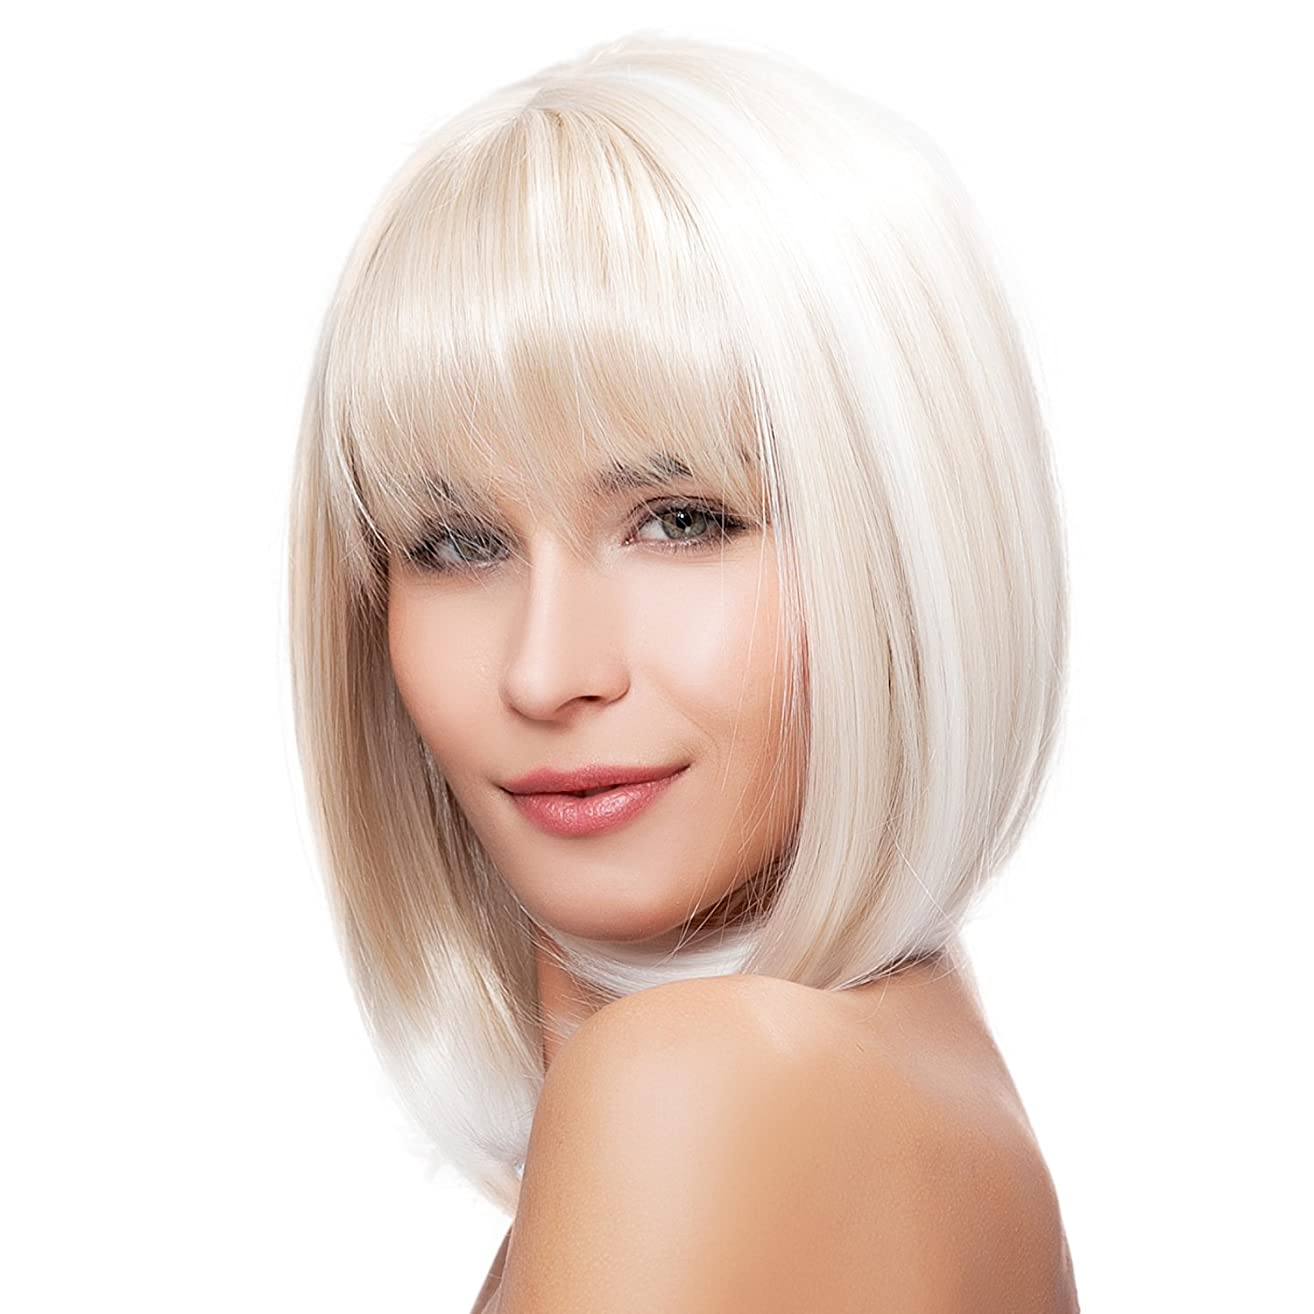 Kalyss Short Shoulder Length Bob Blonde Wigs with Hair Bangs Heat Resistant Yaki Synthetic Wig for Women